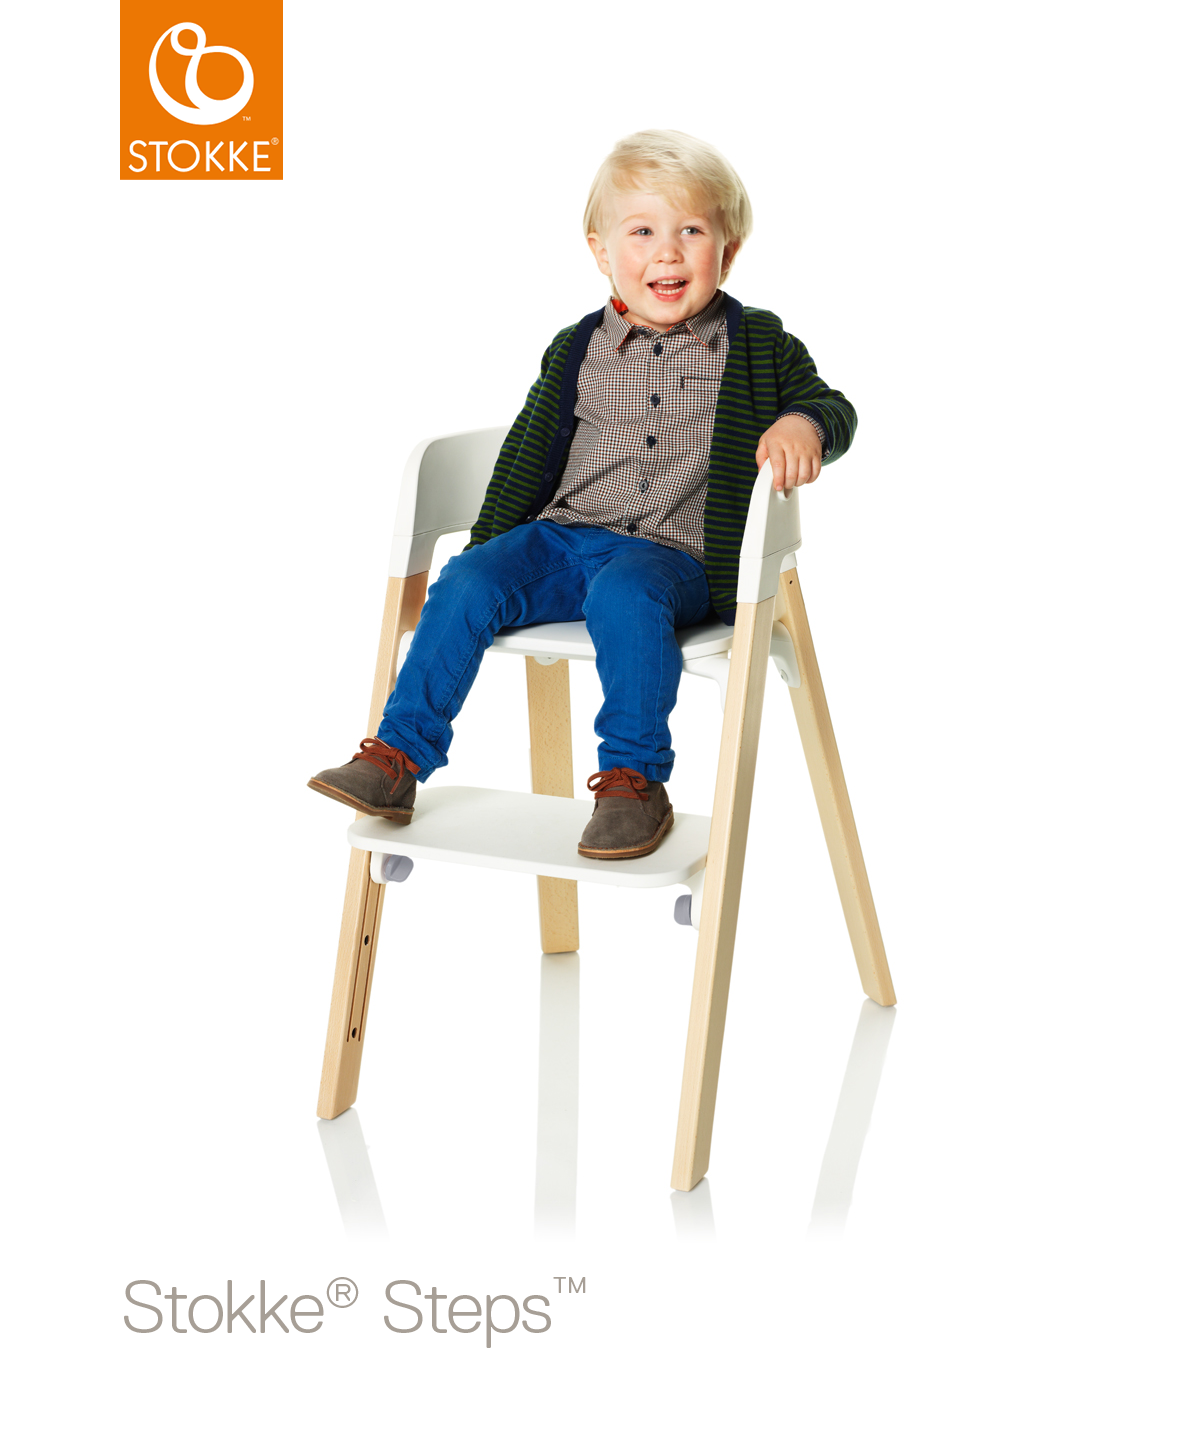 stokke steps beuken hazy grey kinderstoelen legs. Black Bedroom Furniture Sets. Home Design Ideas